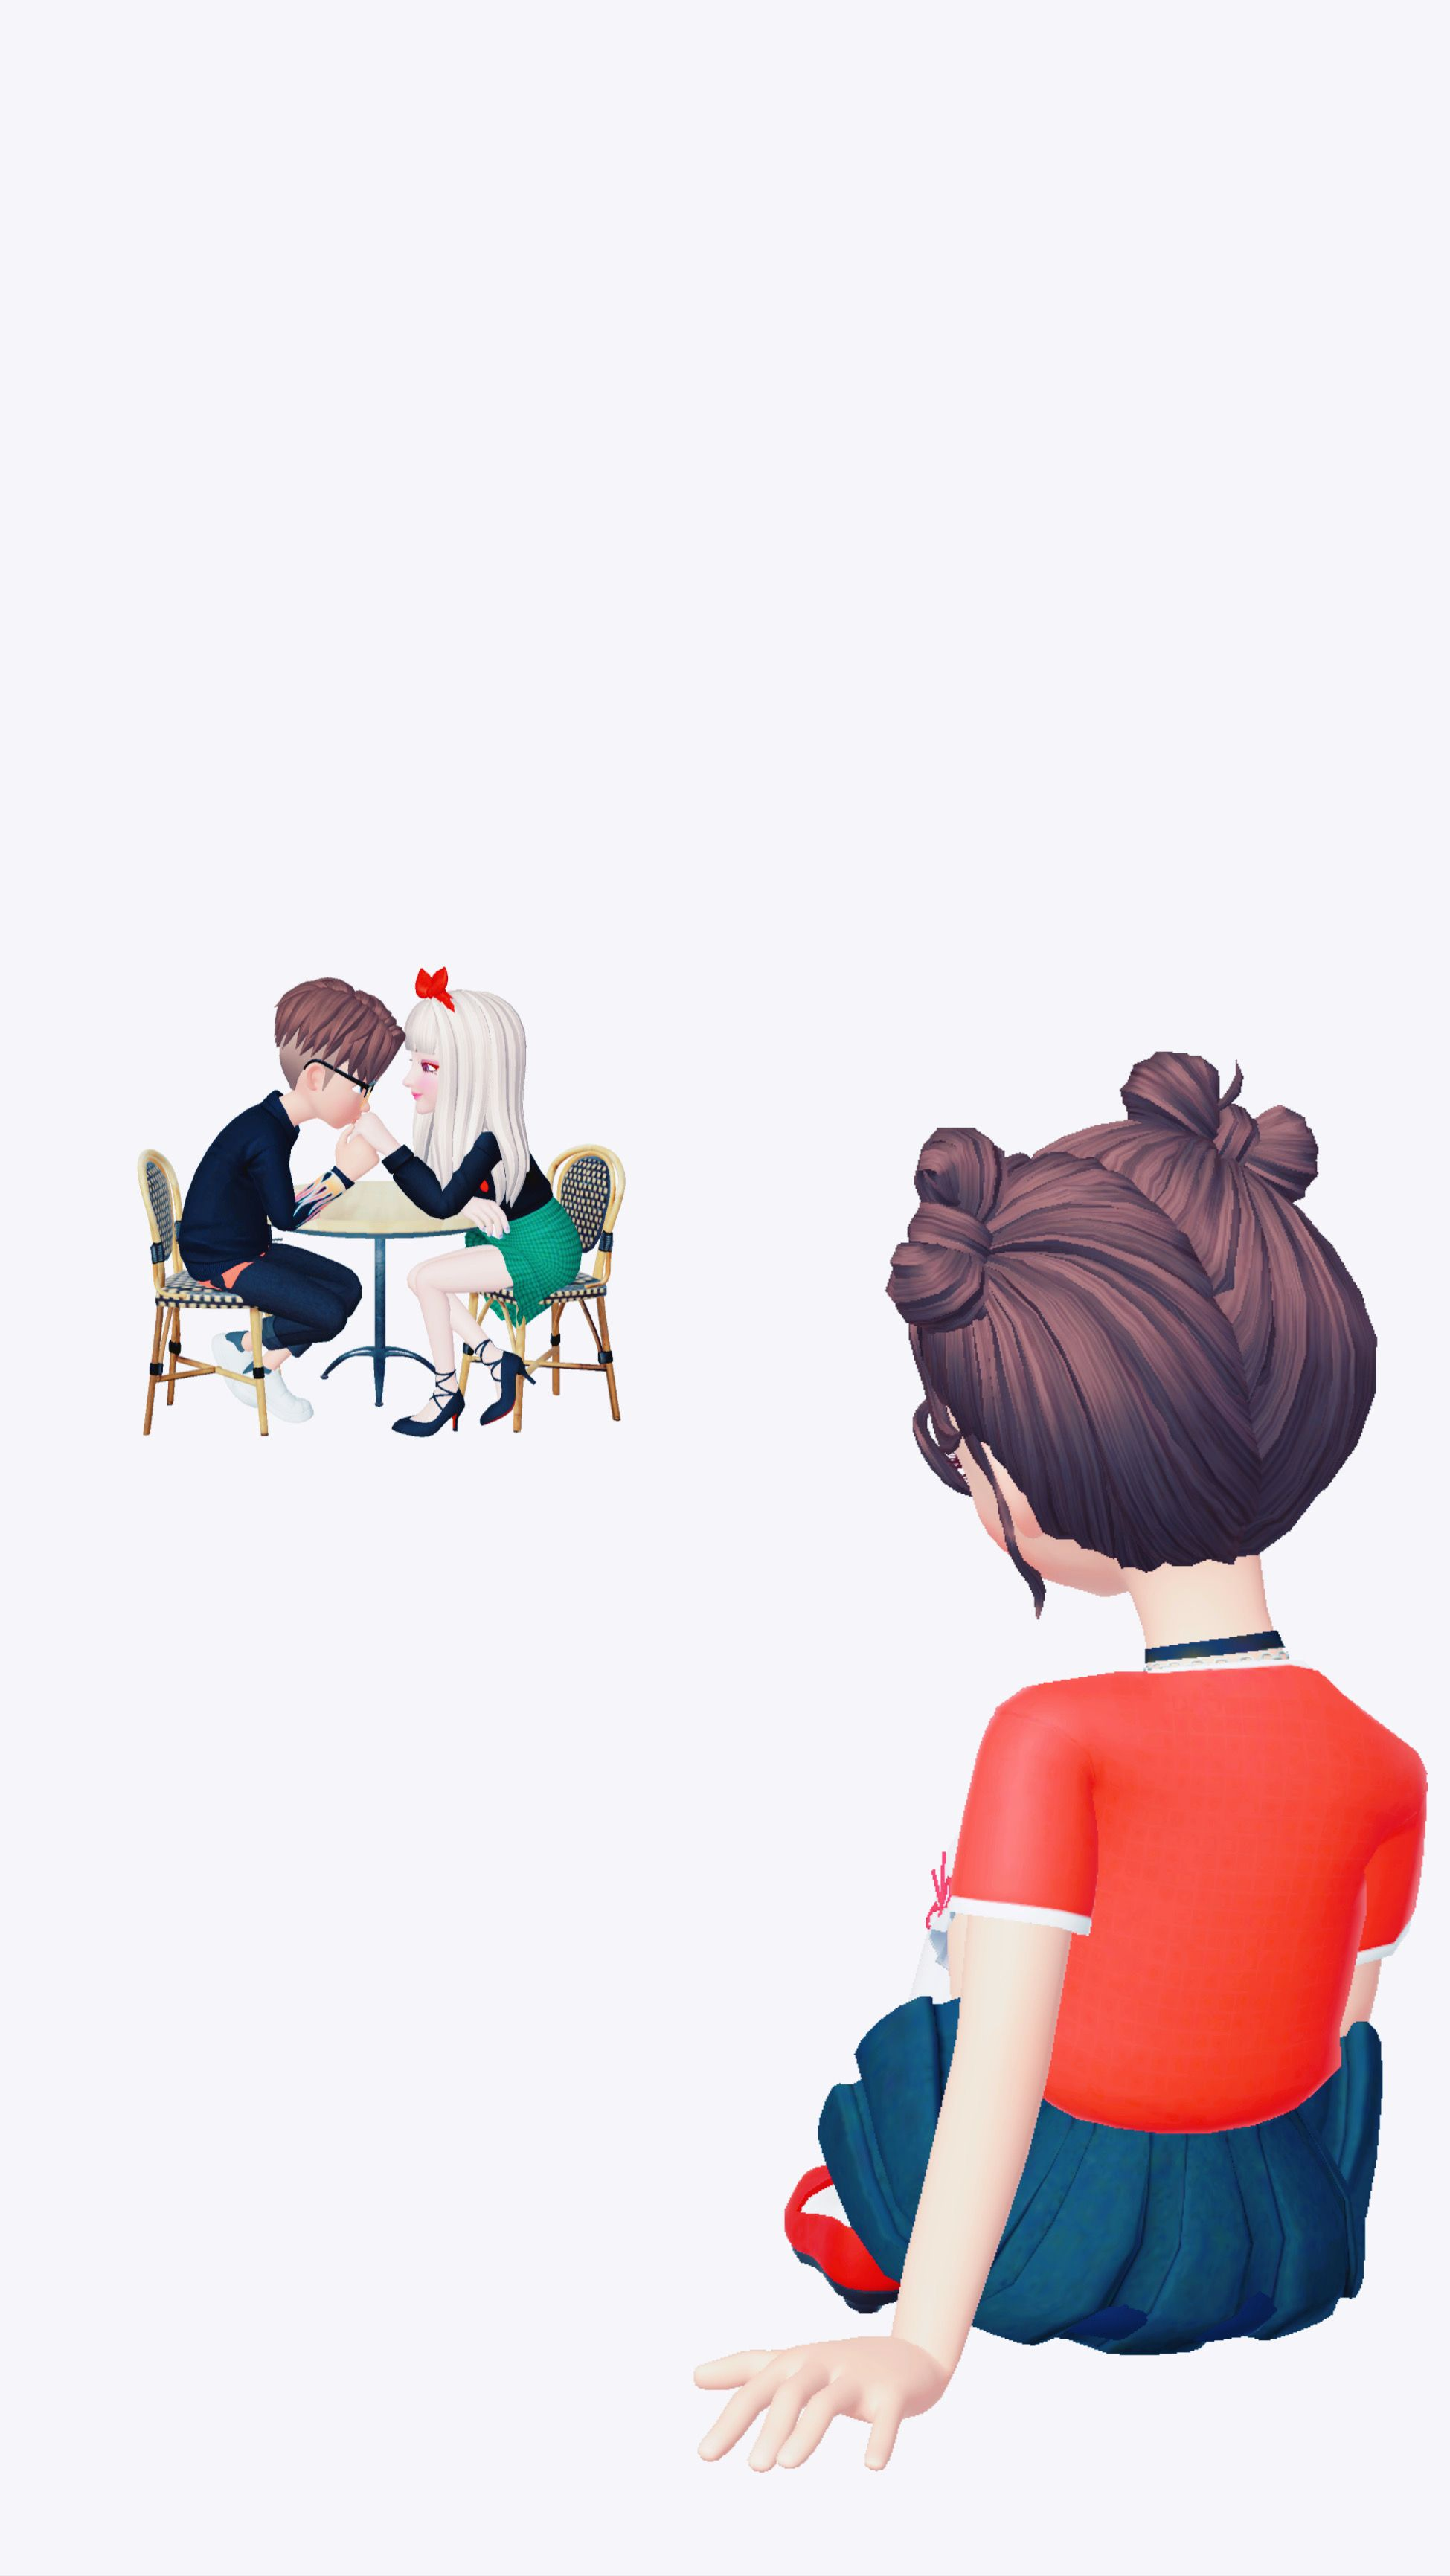 Pin By حنــو On بنات باربي Photo Ideas Girl Profile Picture For Girls Cute Drawings